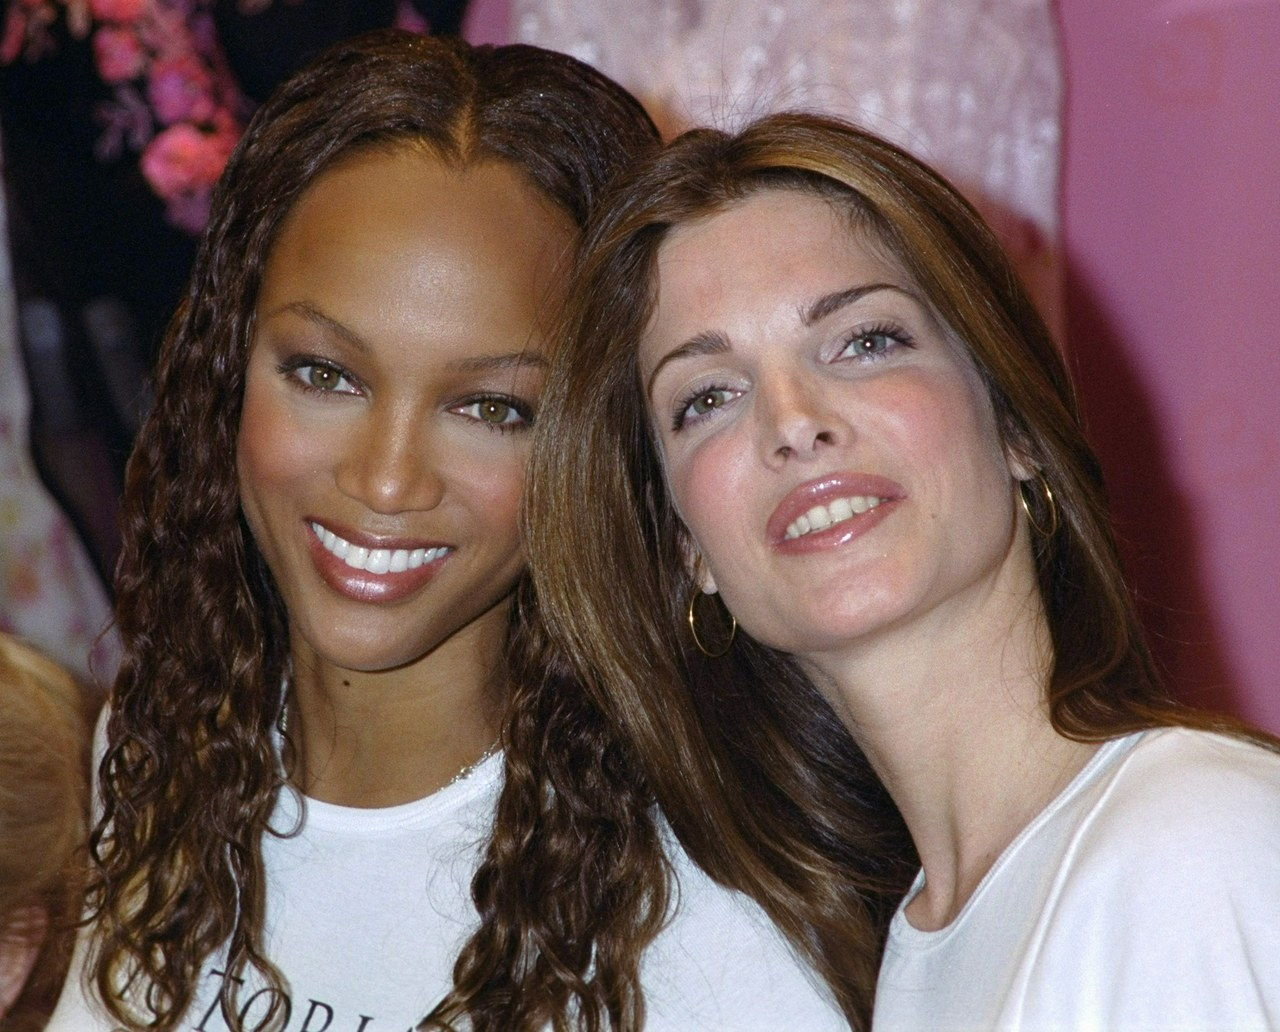 UNITED STATES - FEBRUARY 09: Supermodels Tyra Banks (left) and Stephanie Seymour put their heads together at the Victoria's Secret shop on Fifth Ave. They were on hand for the announcement that Victoria's Secret and Miramax will back a fashion show at the Cannes Film Festival on behalf of AIDS research. (Photo by Richard Corkery/NY Daily News Archive via Getty Images)